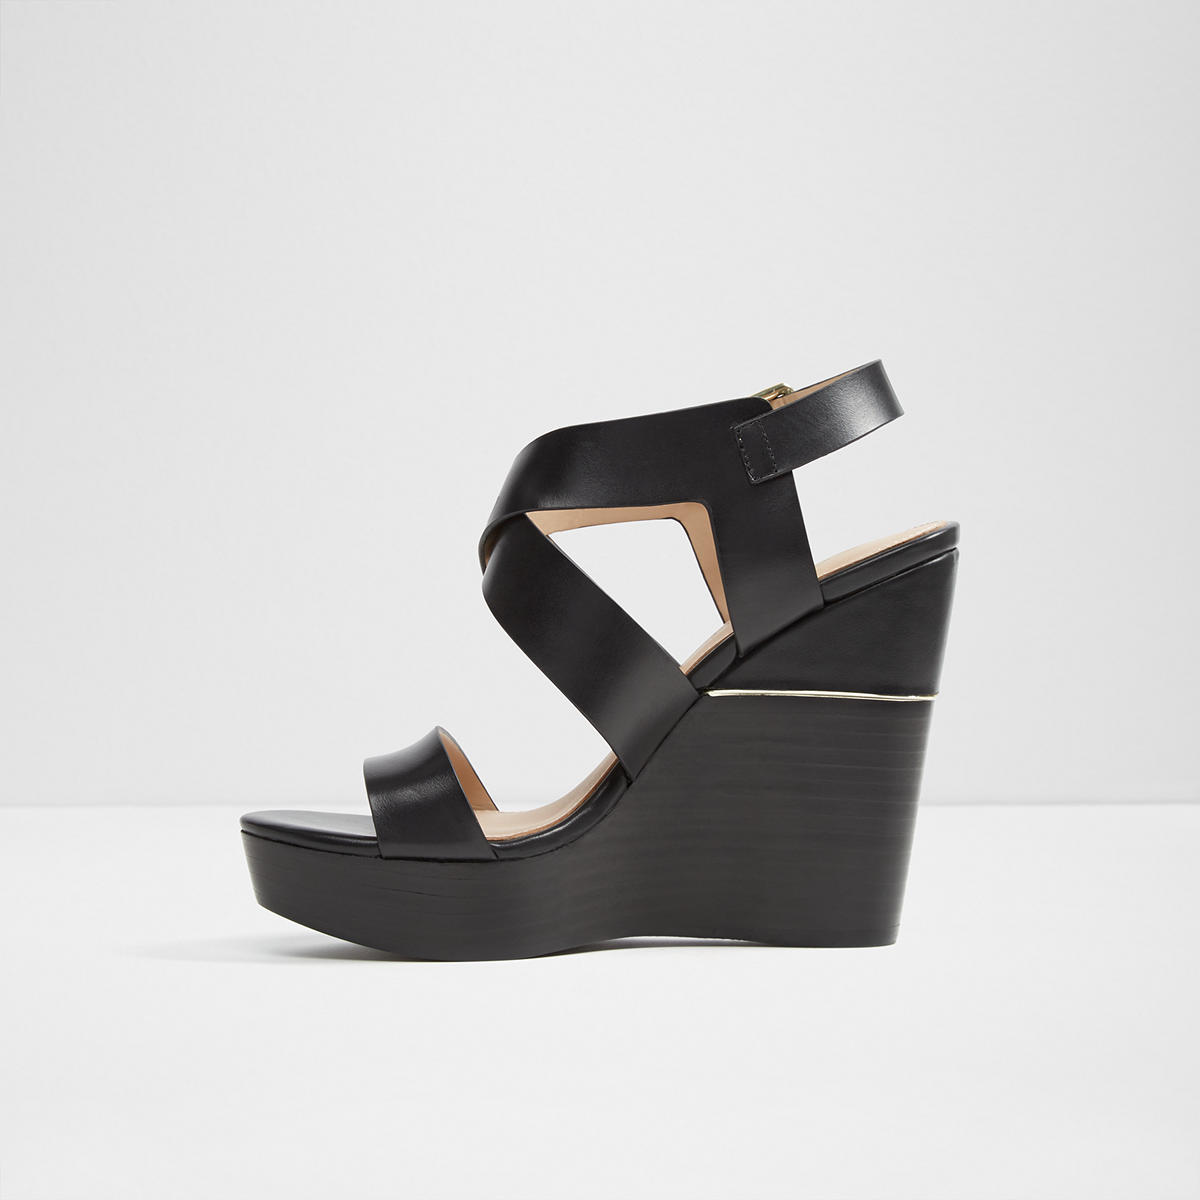 44f8cb7185b Faustina Black Women s Wedges